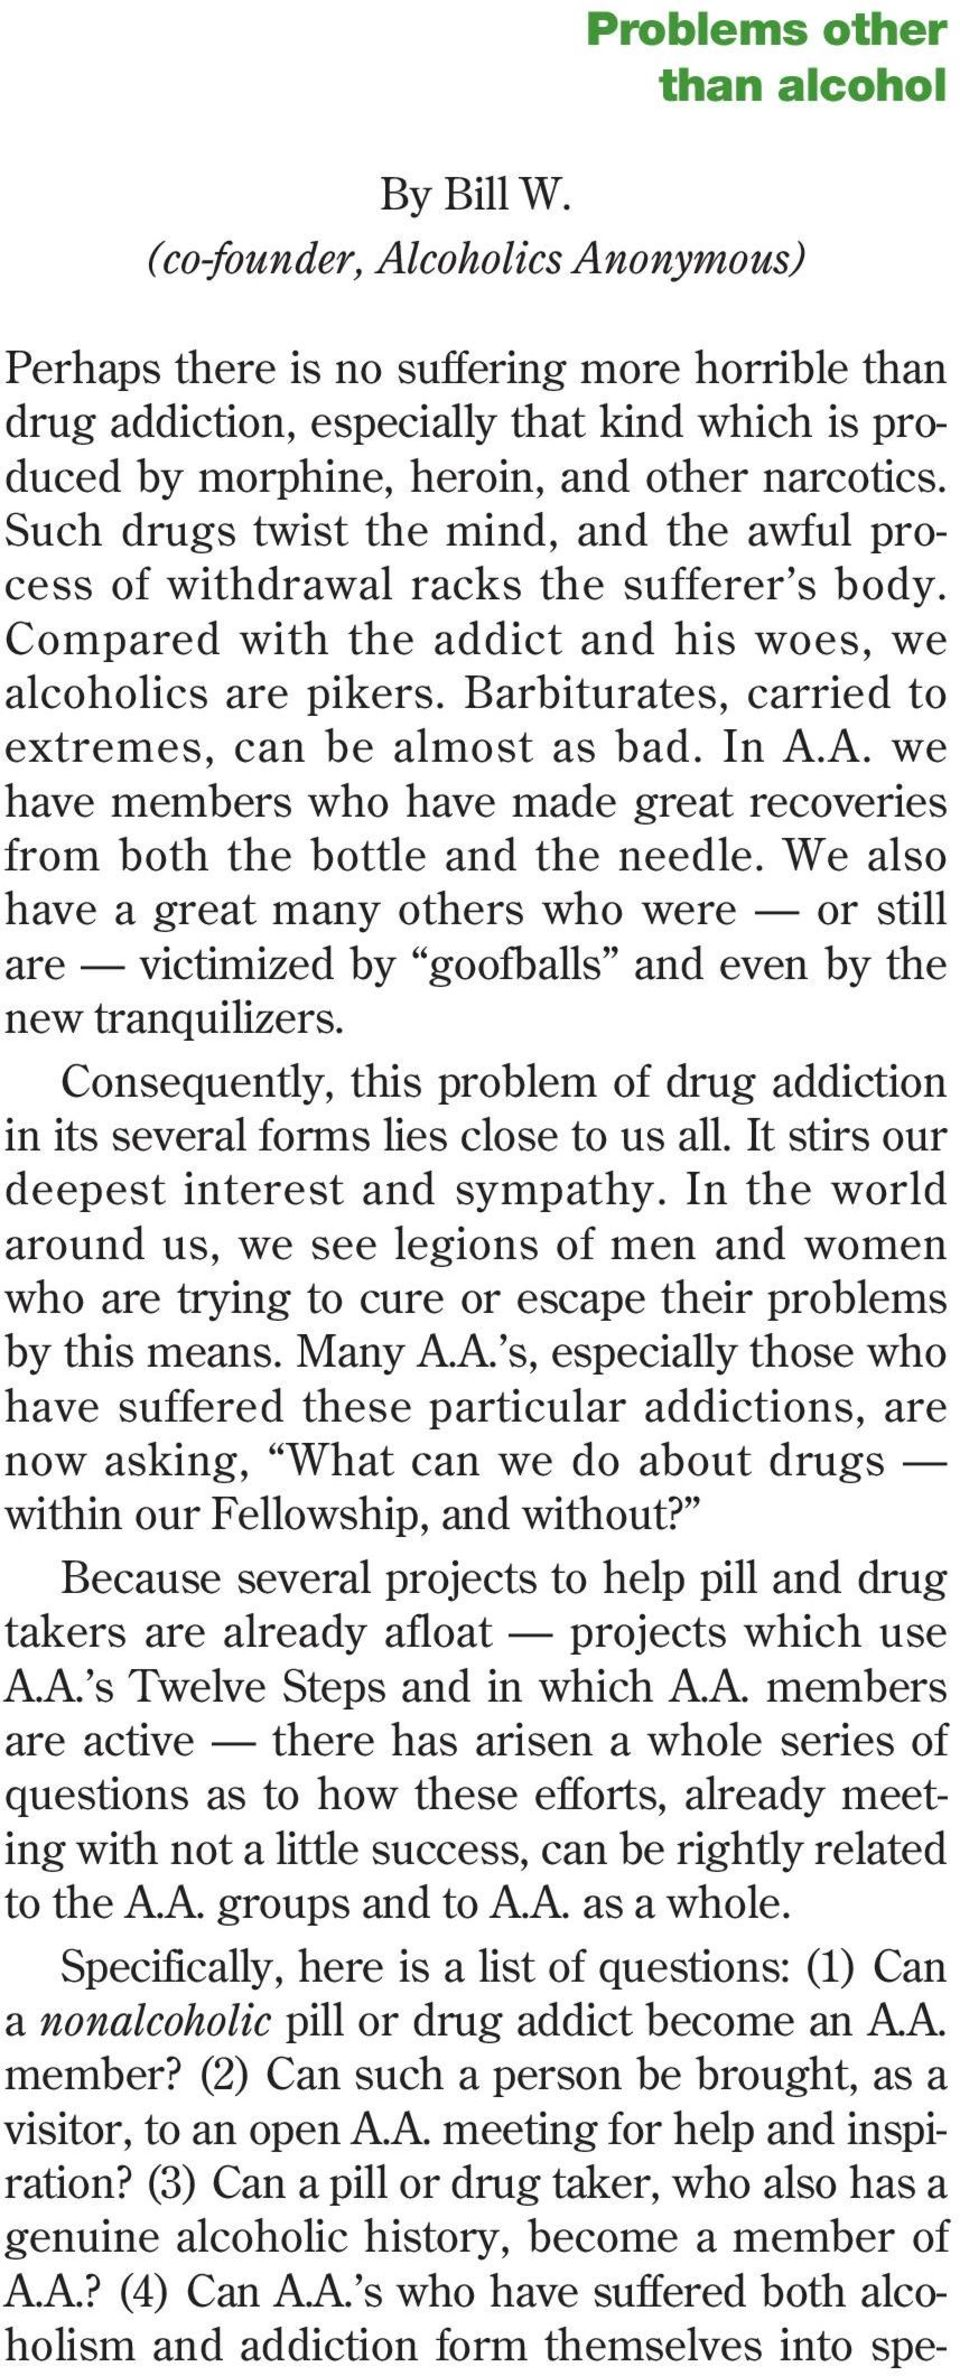 Such drugs twist the mind, and the awful process of withdrawal racks the sufferer s body. Compared with the addict and his woes, we alcoholics are pikers.